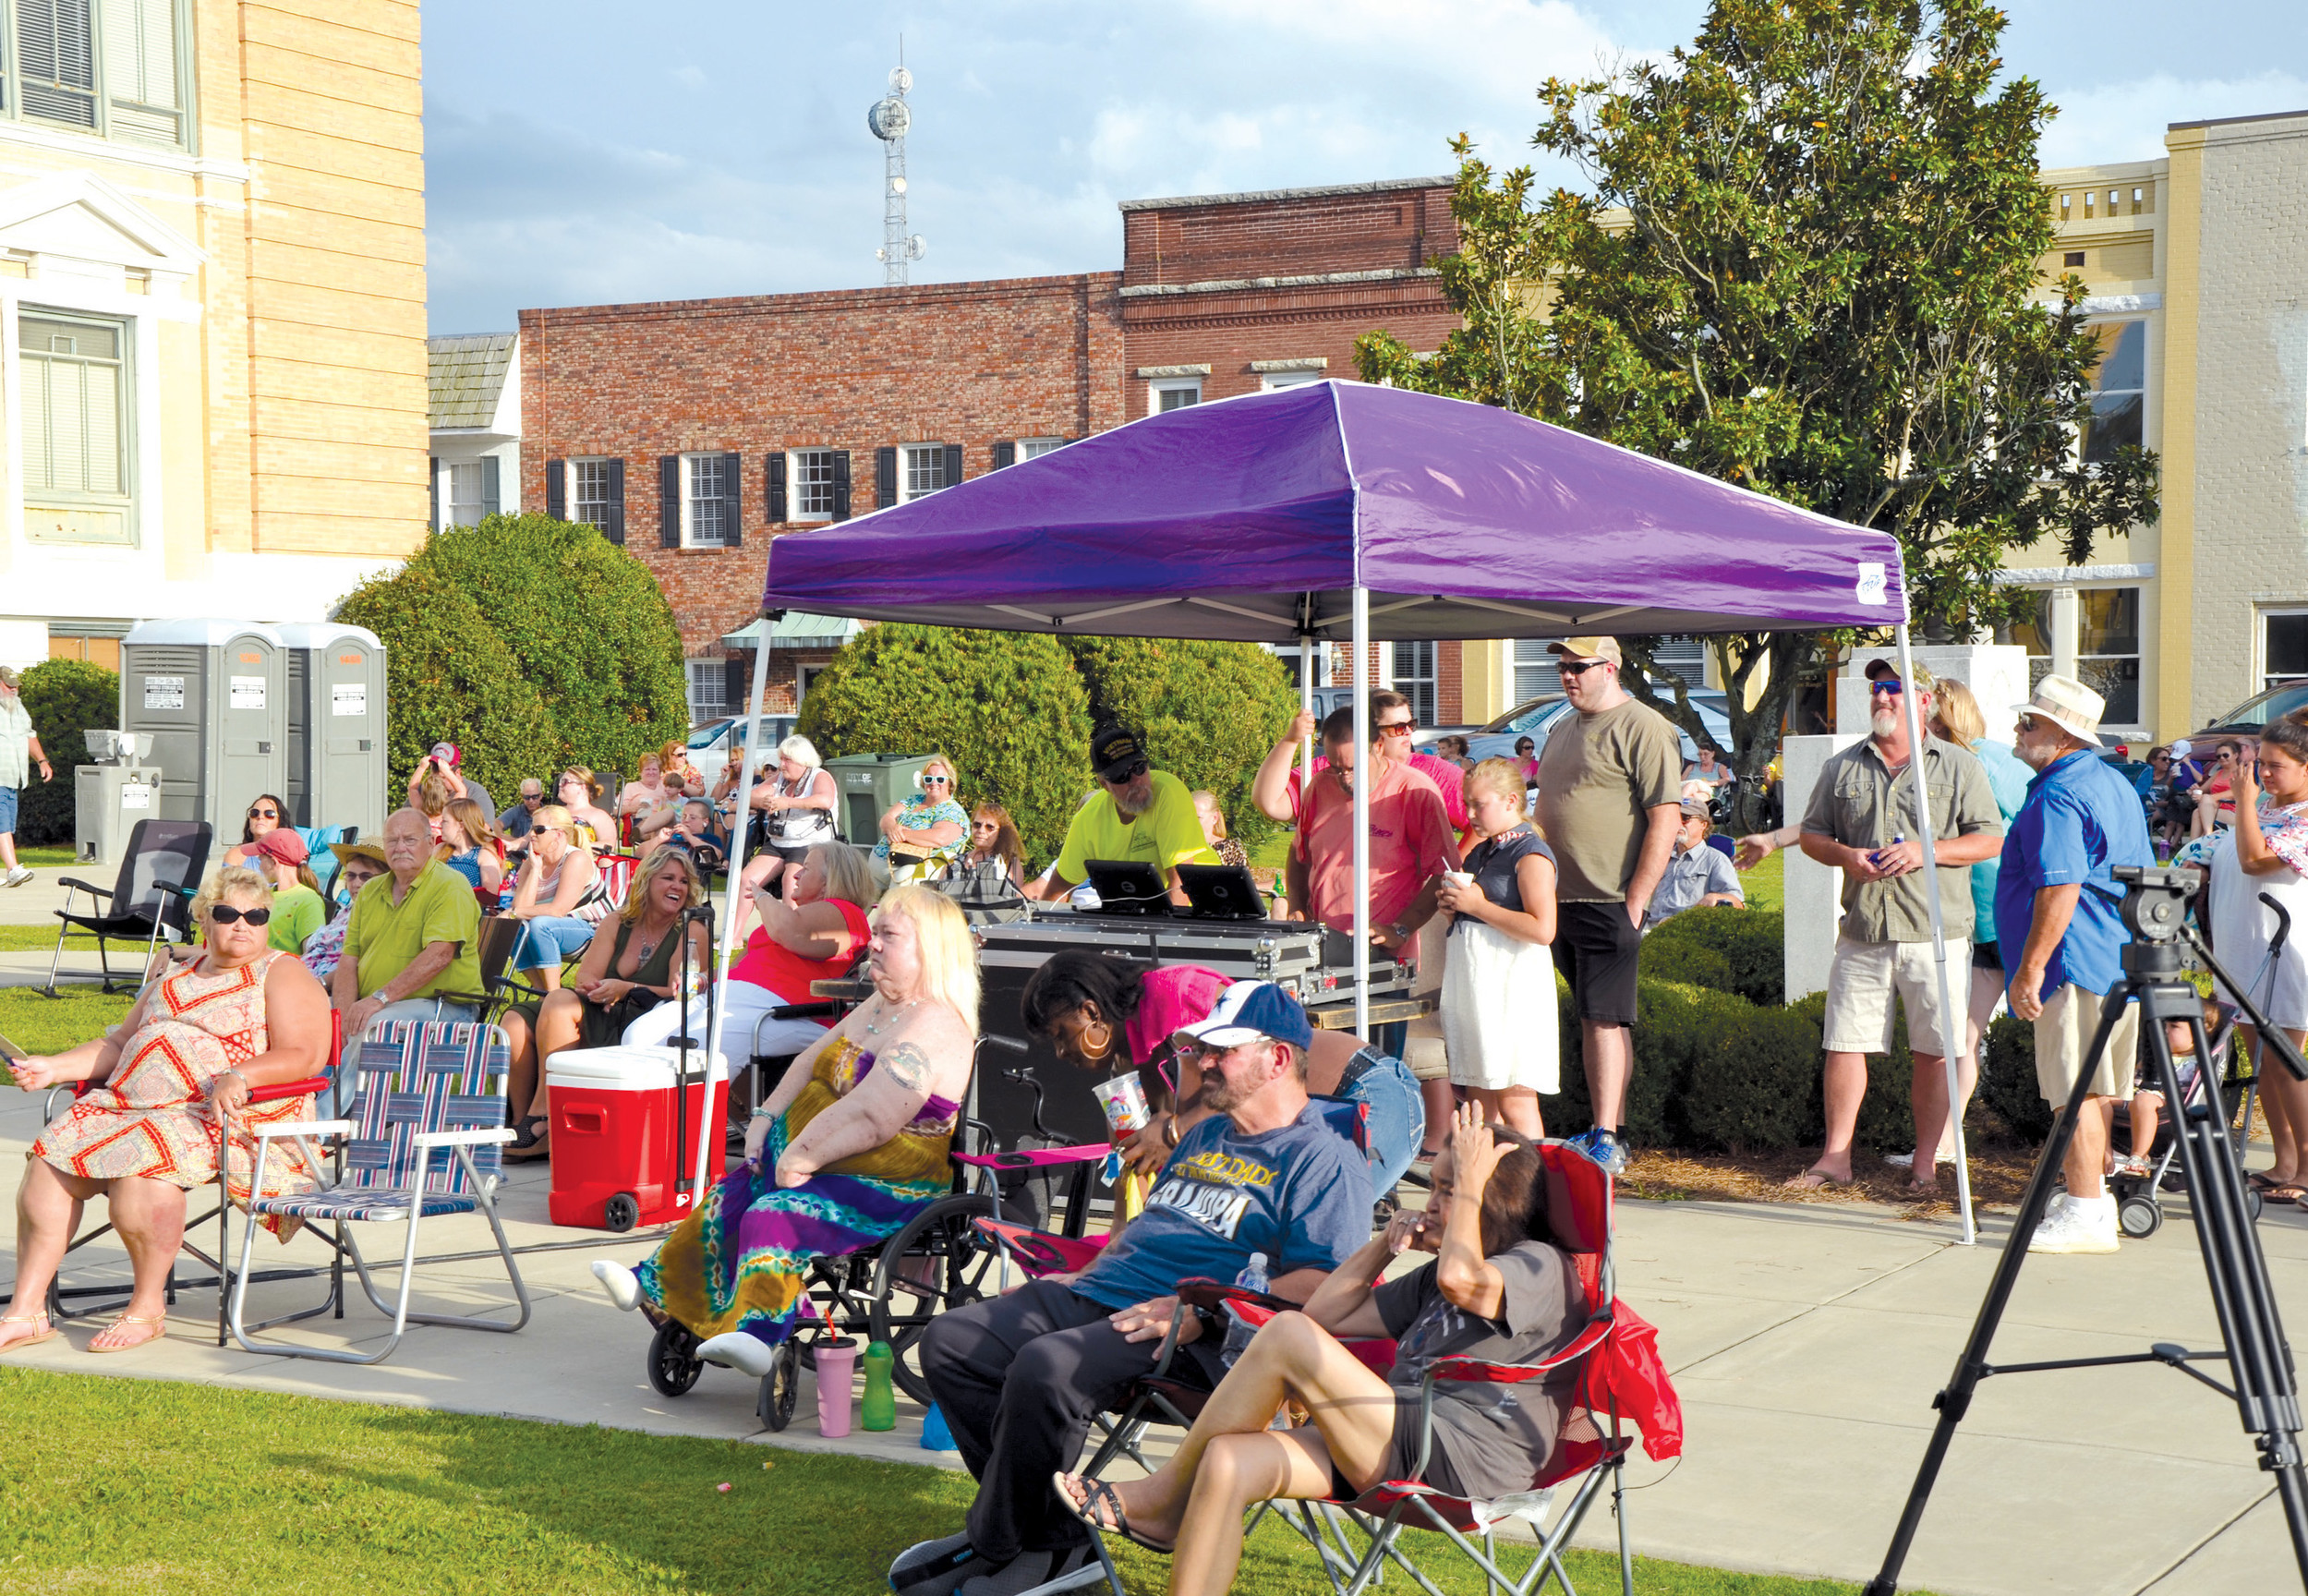 Crowds for this summer's Fourth Fridays concert series have been very good. The concerts are now held on the Sumter County Courthouse lawn, but nothing else has changed except the bands, which are different each week and play a variety of music.